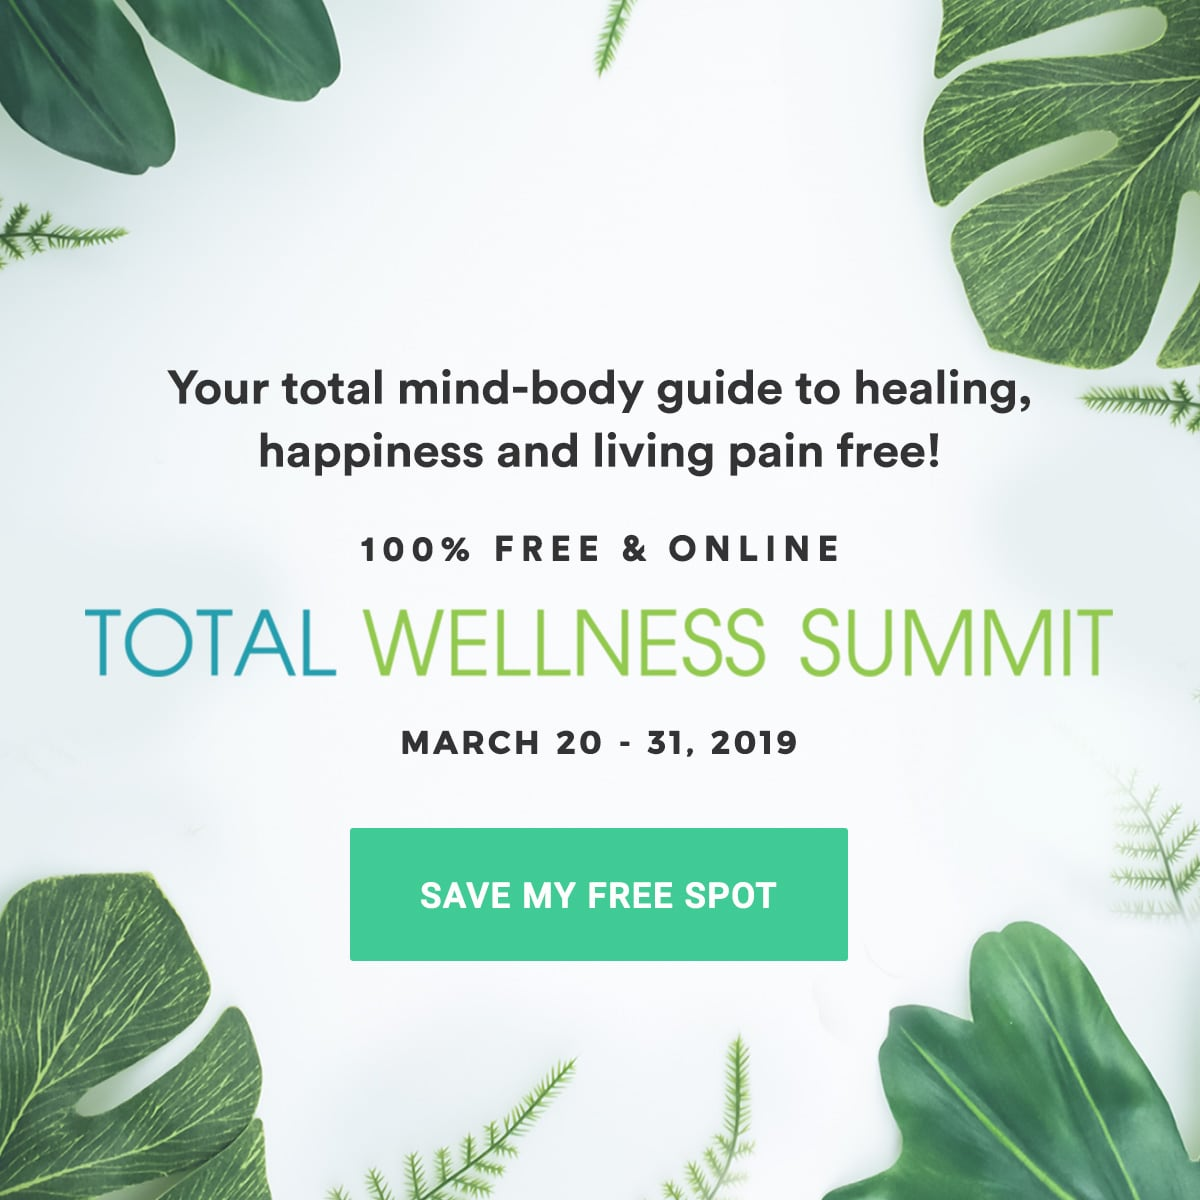 FREE & ONLINE - TOTAL WELLNESS SUMMIT - MARCH 20-31, 2019